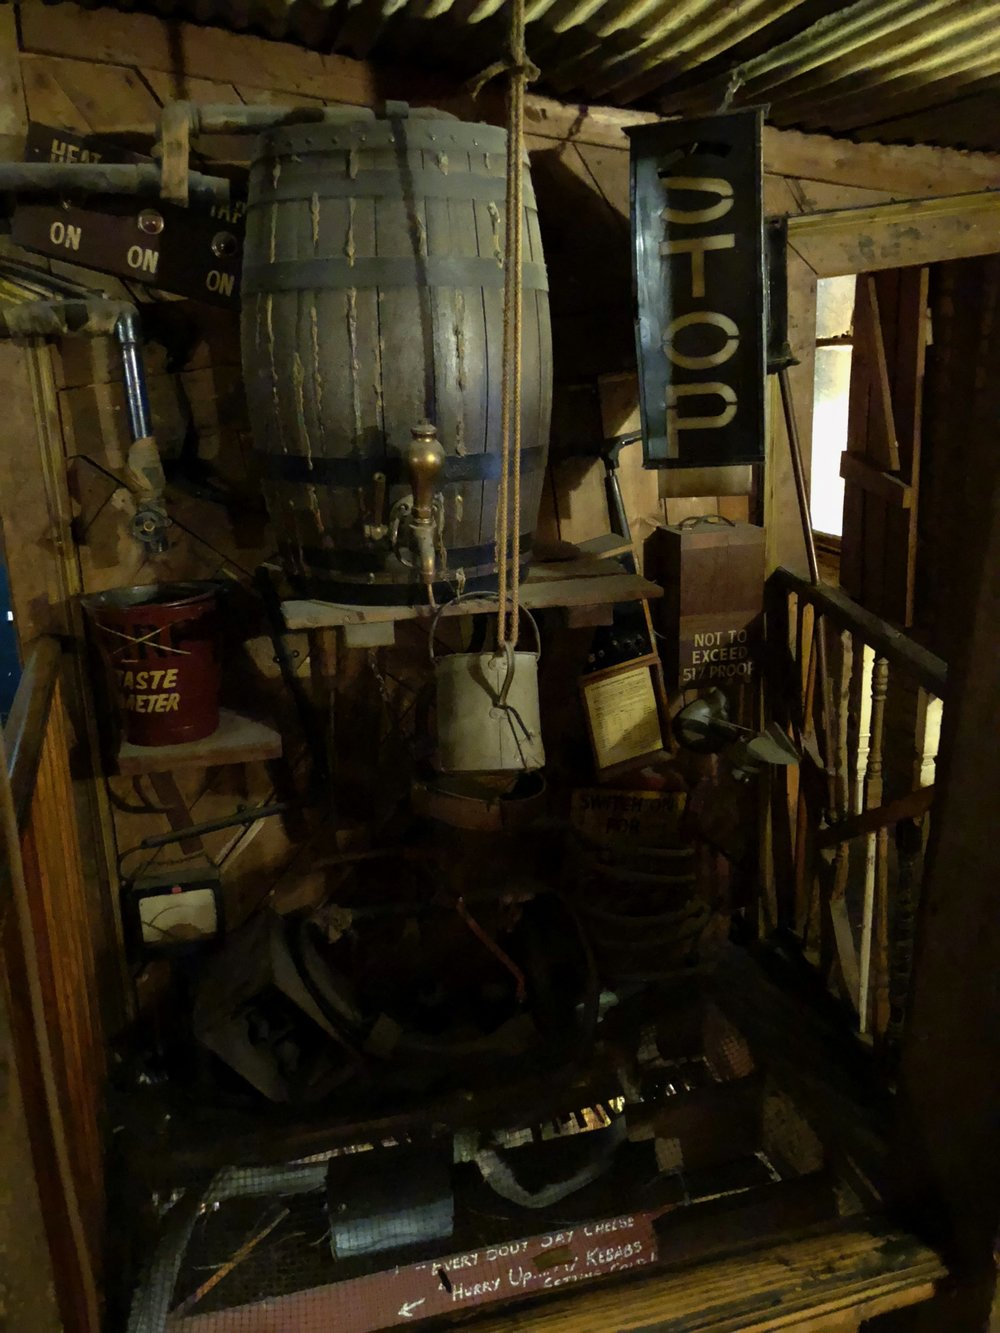 Some of the crazy stuff inside the pub.